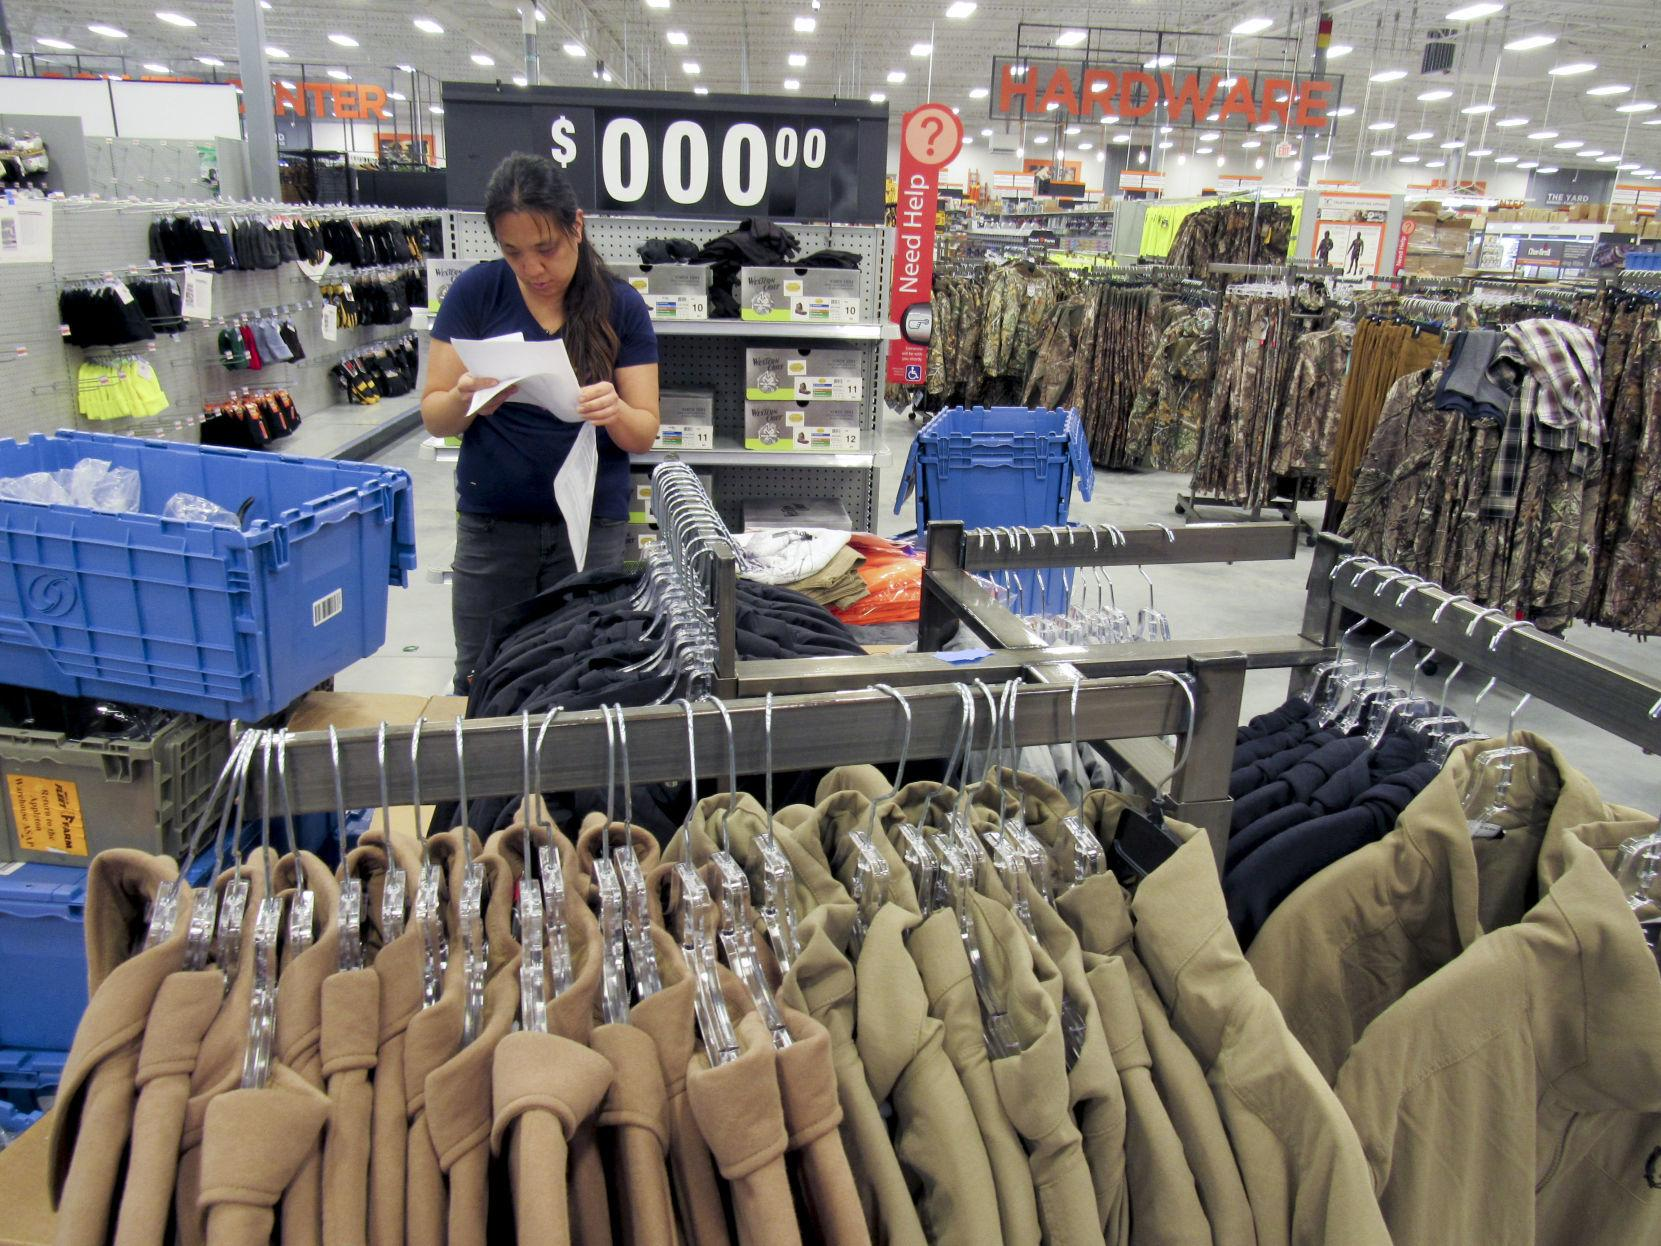 Mills Fleet Farm Set To Open In Deforest While Already Looking For A Second Dane County Location Business News Madison Com